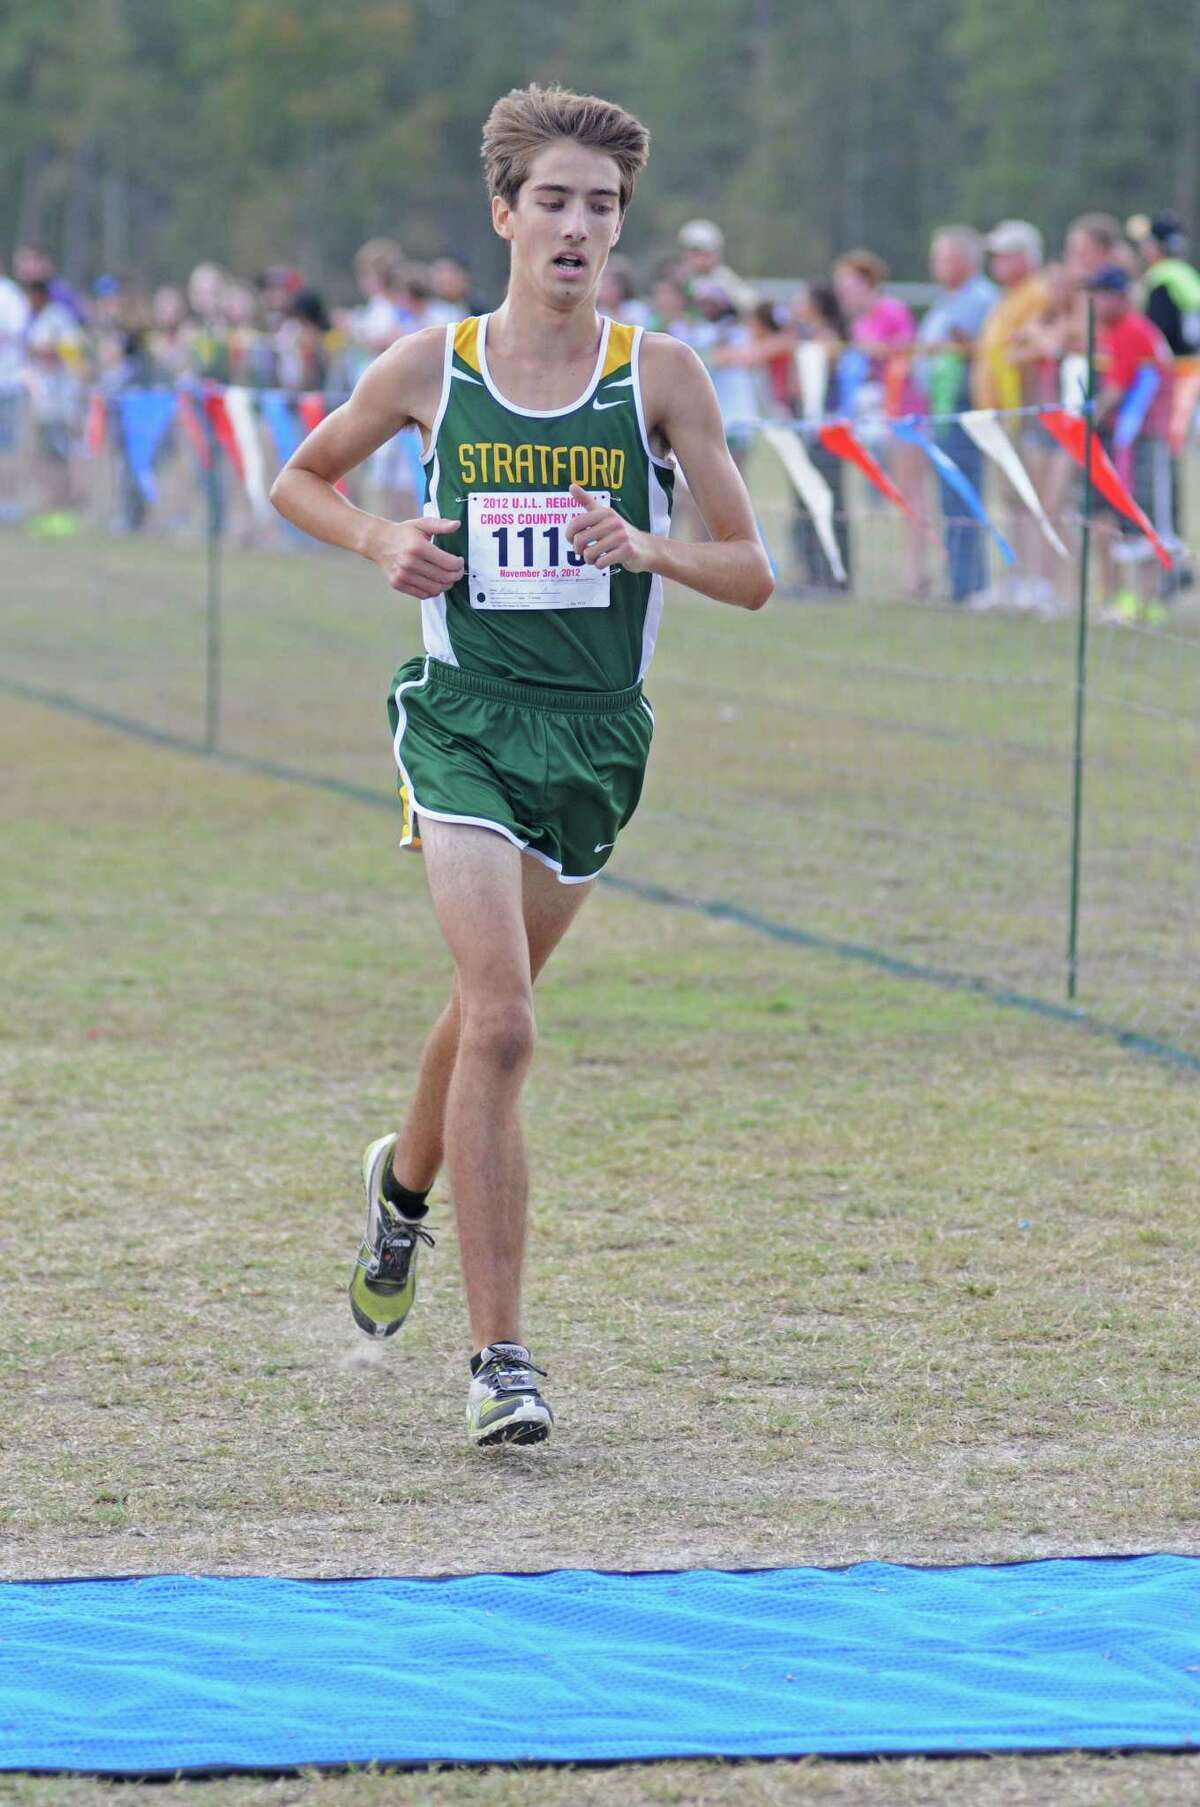 Stratford junior Austin Richard led the Spartans to their first Class 4A cross country title, finishing second individually at the State Meet in Round Rock last weekend.